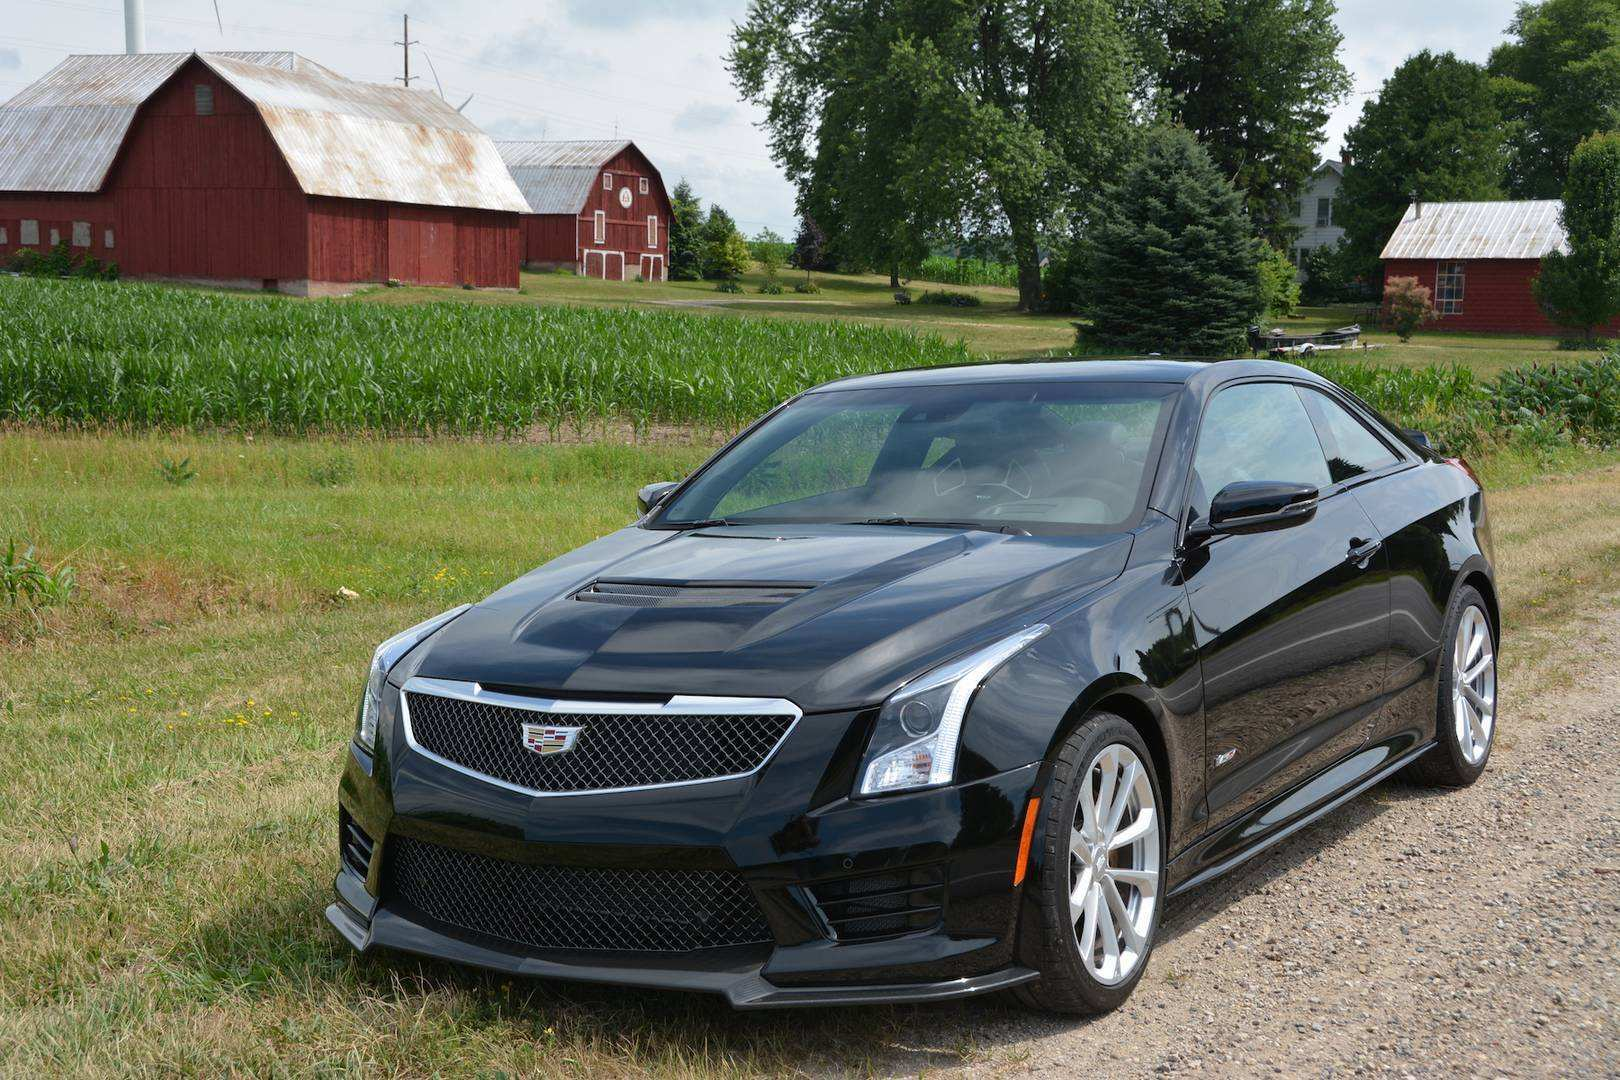 83 The 2019 Cadillac ATS V Coupe Configurations